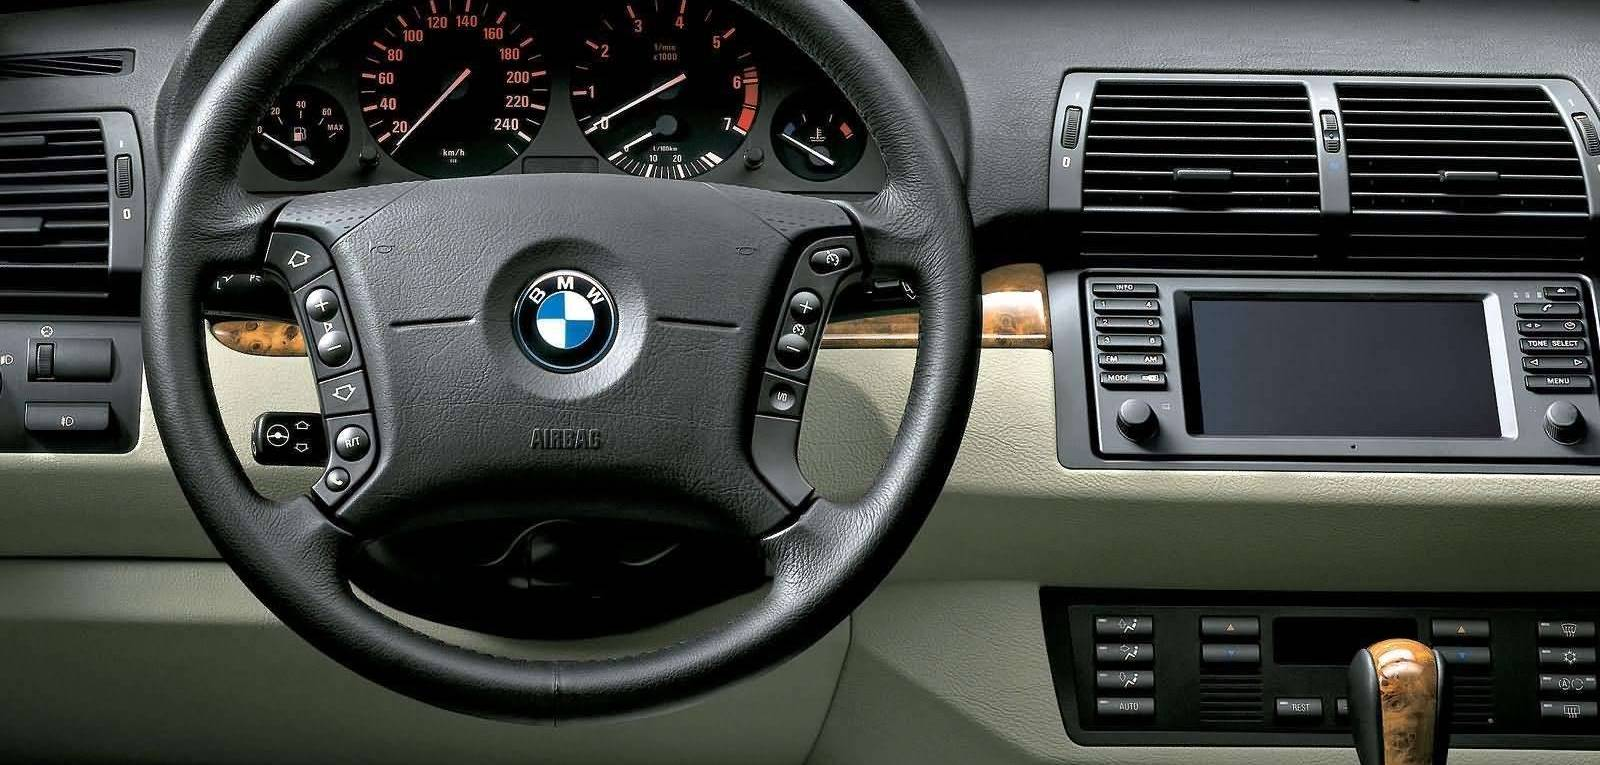 bmw x5 interior bing images. Black Bedroom Furniture Sets. Home Design Ideas